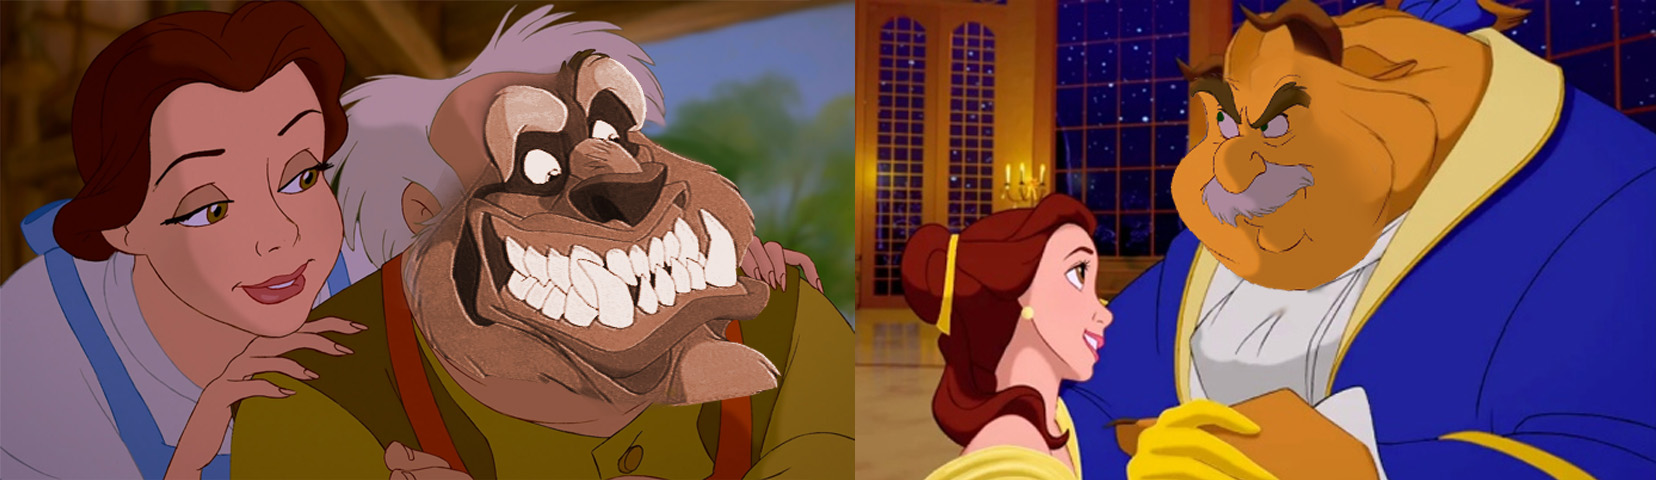 Beauty And The Beast Face Swap by MohawkMewmew on DeviantArt